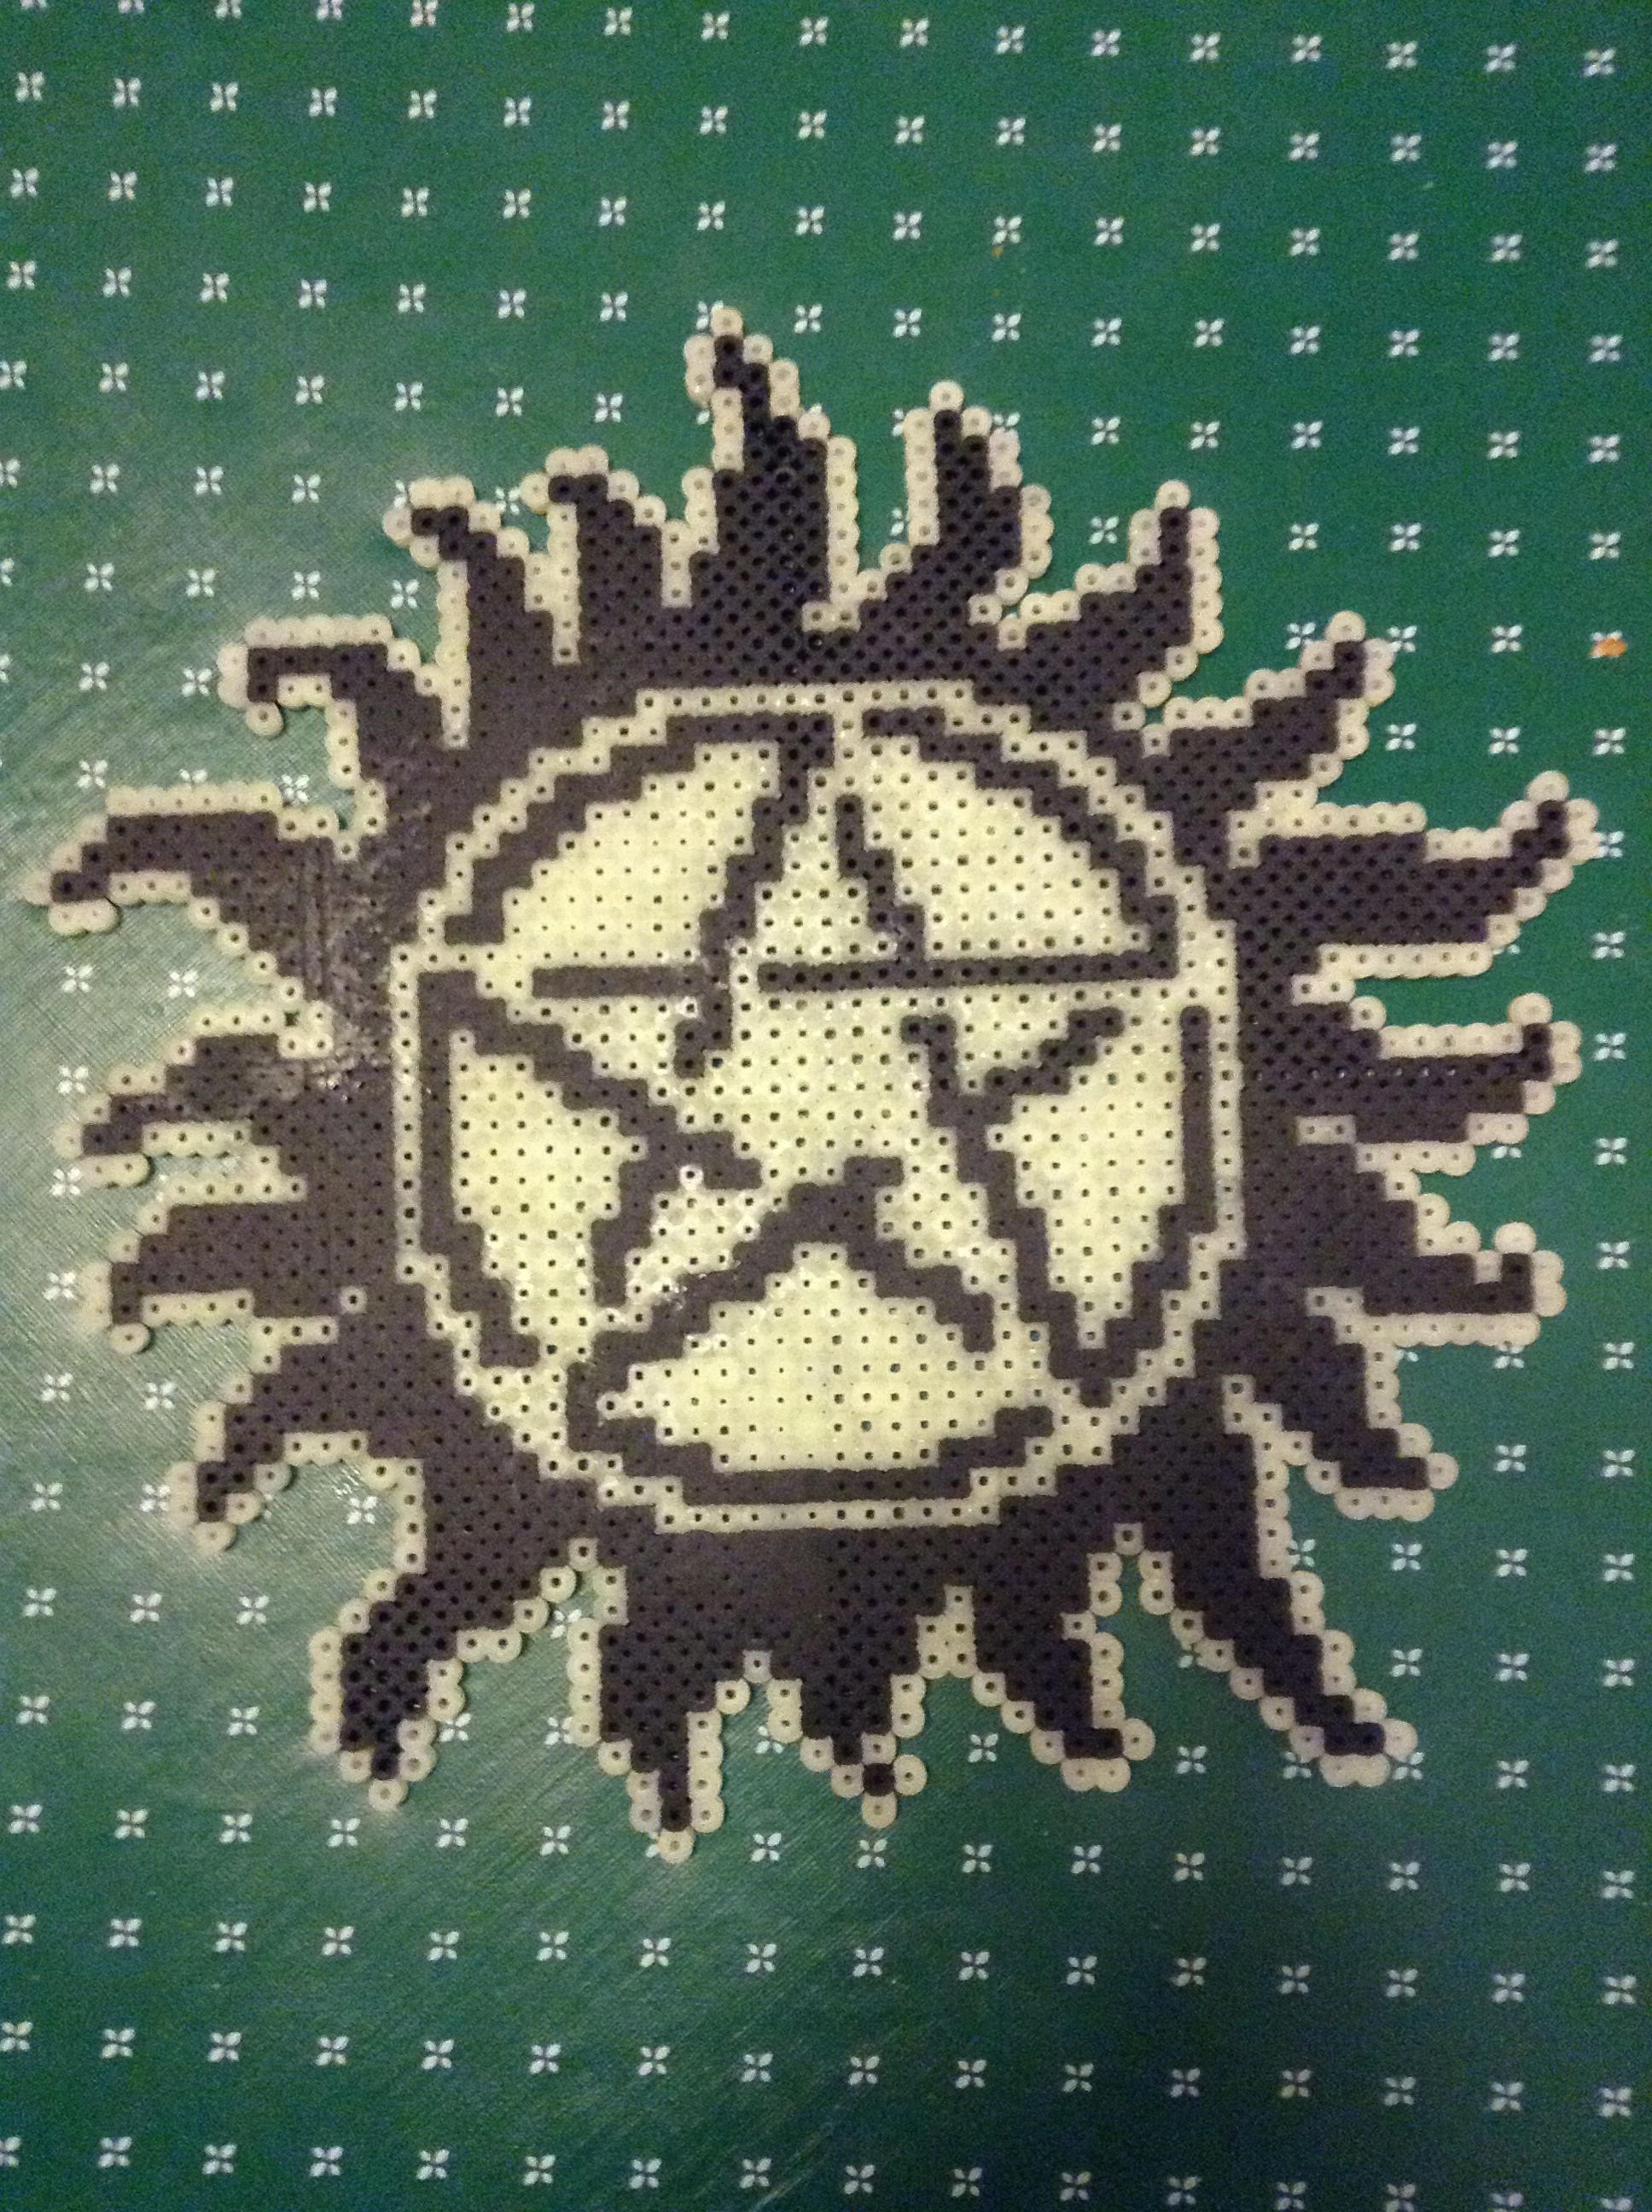 Melty bead AntiPossession tattoo Melty bead designs